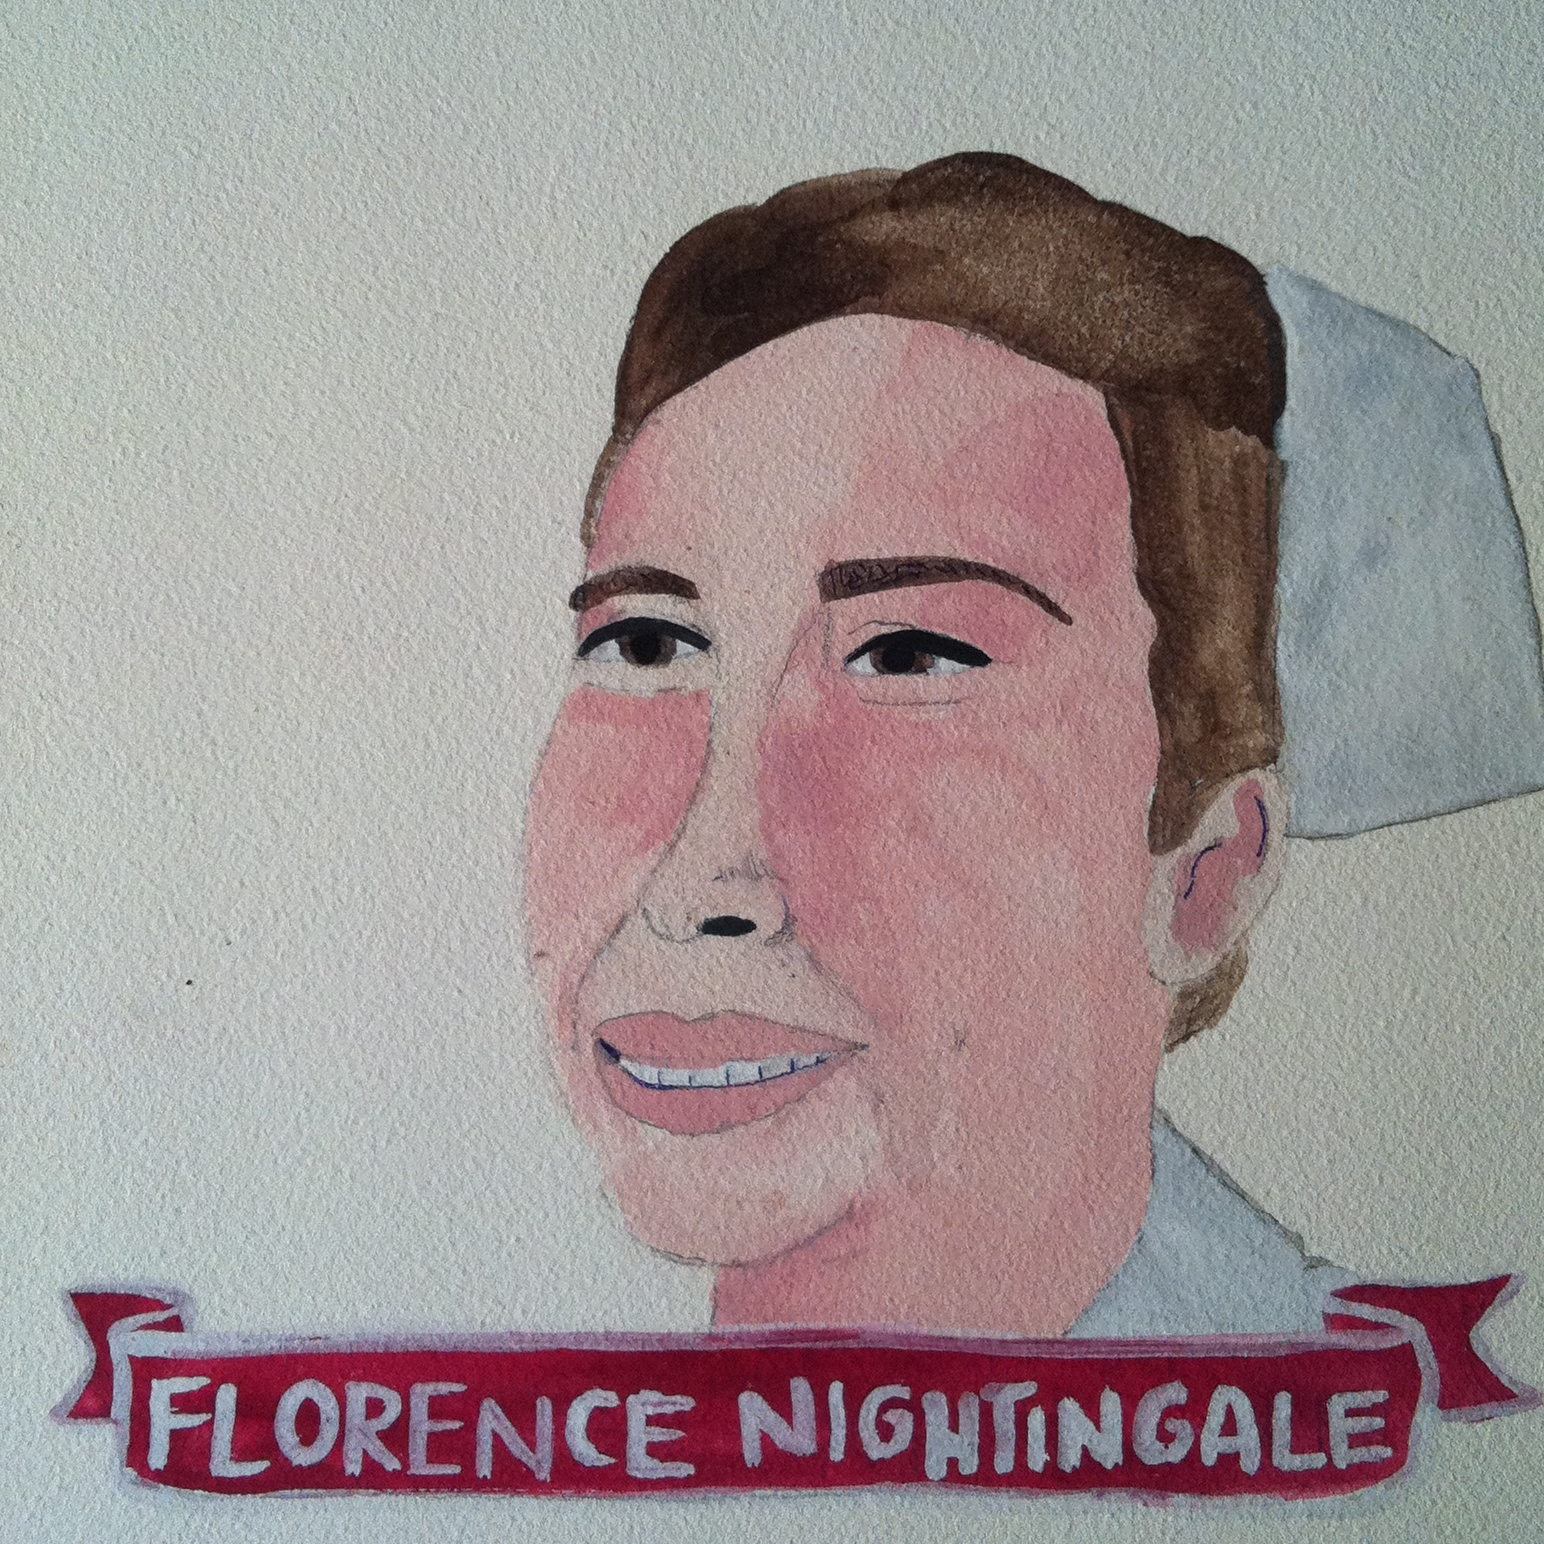 Talent Loves Company at Barbara Archer Gallery: 365 portraits by Lydia Walls - Florence Nightingale